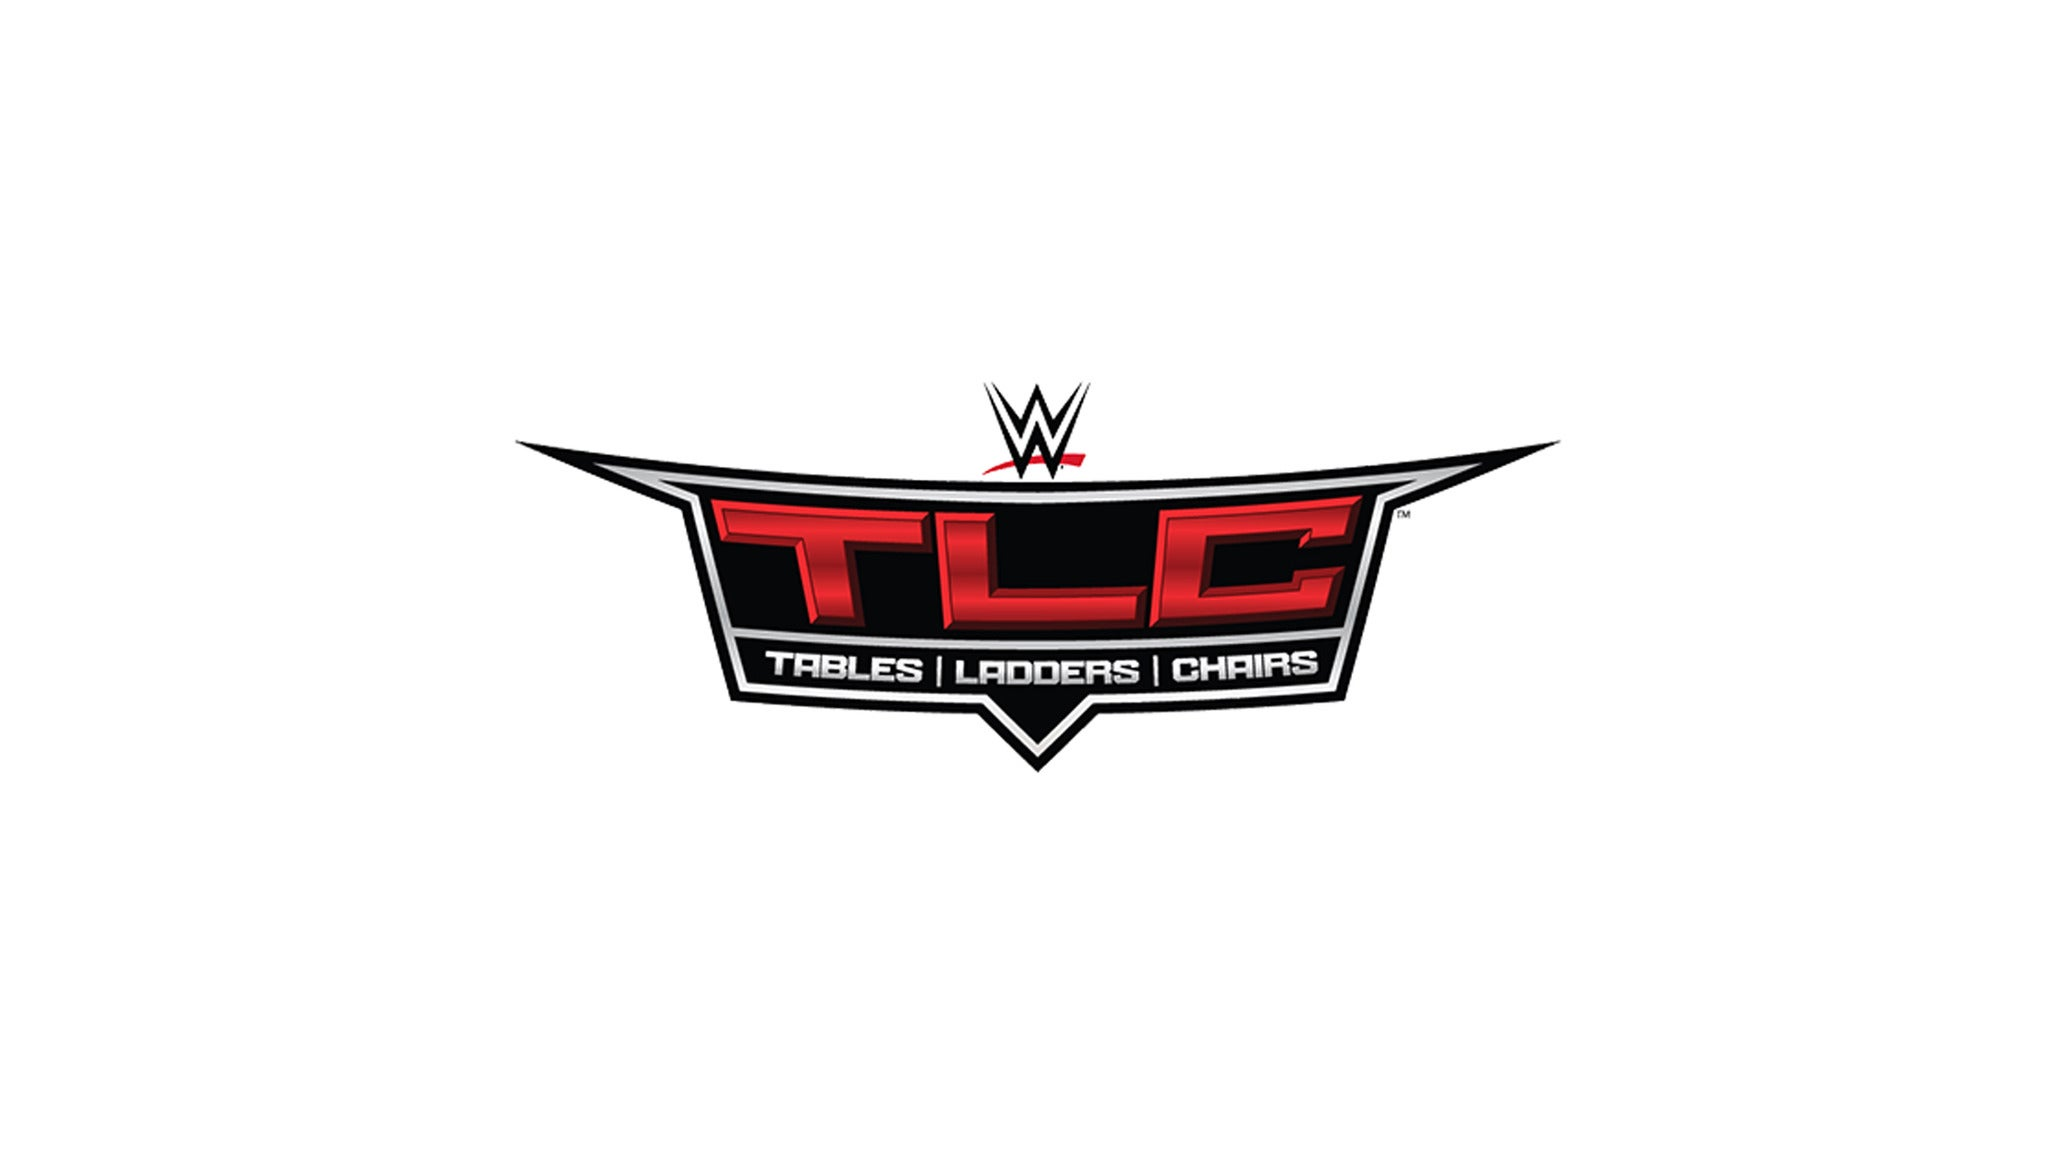 WWE TLC: Tables, Ladders & Chairs at SAP Center at San Jose